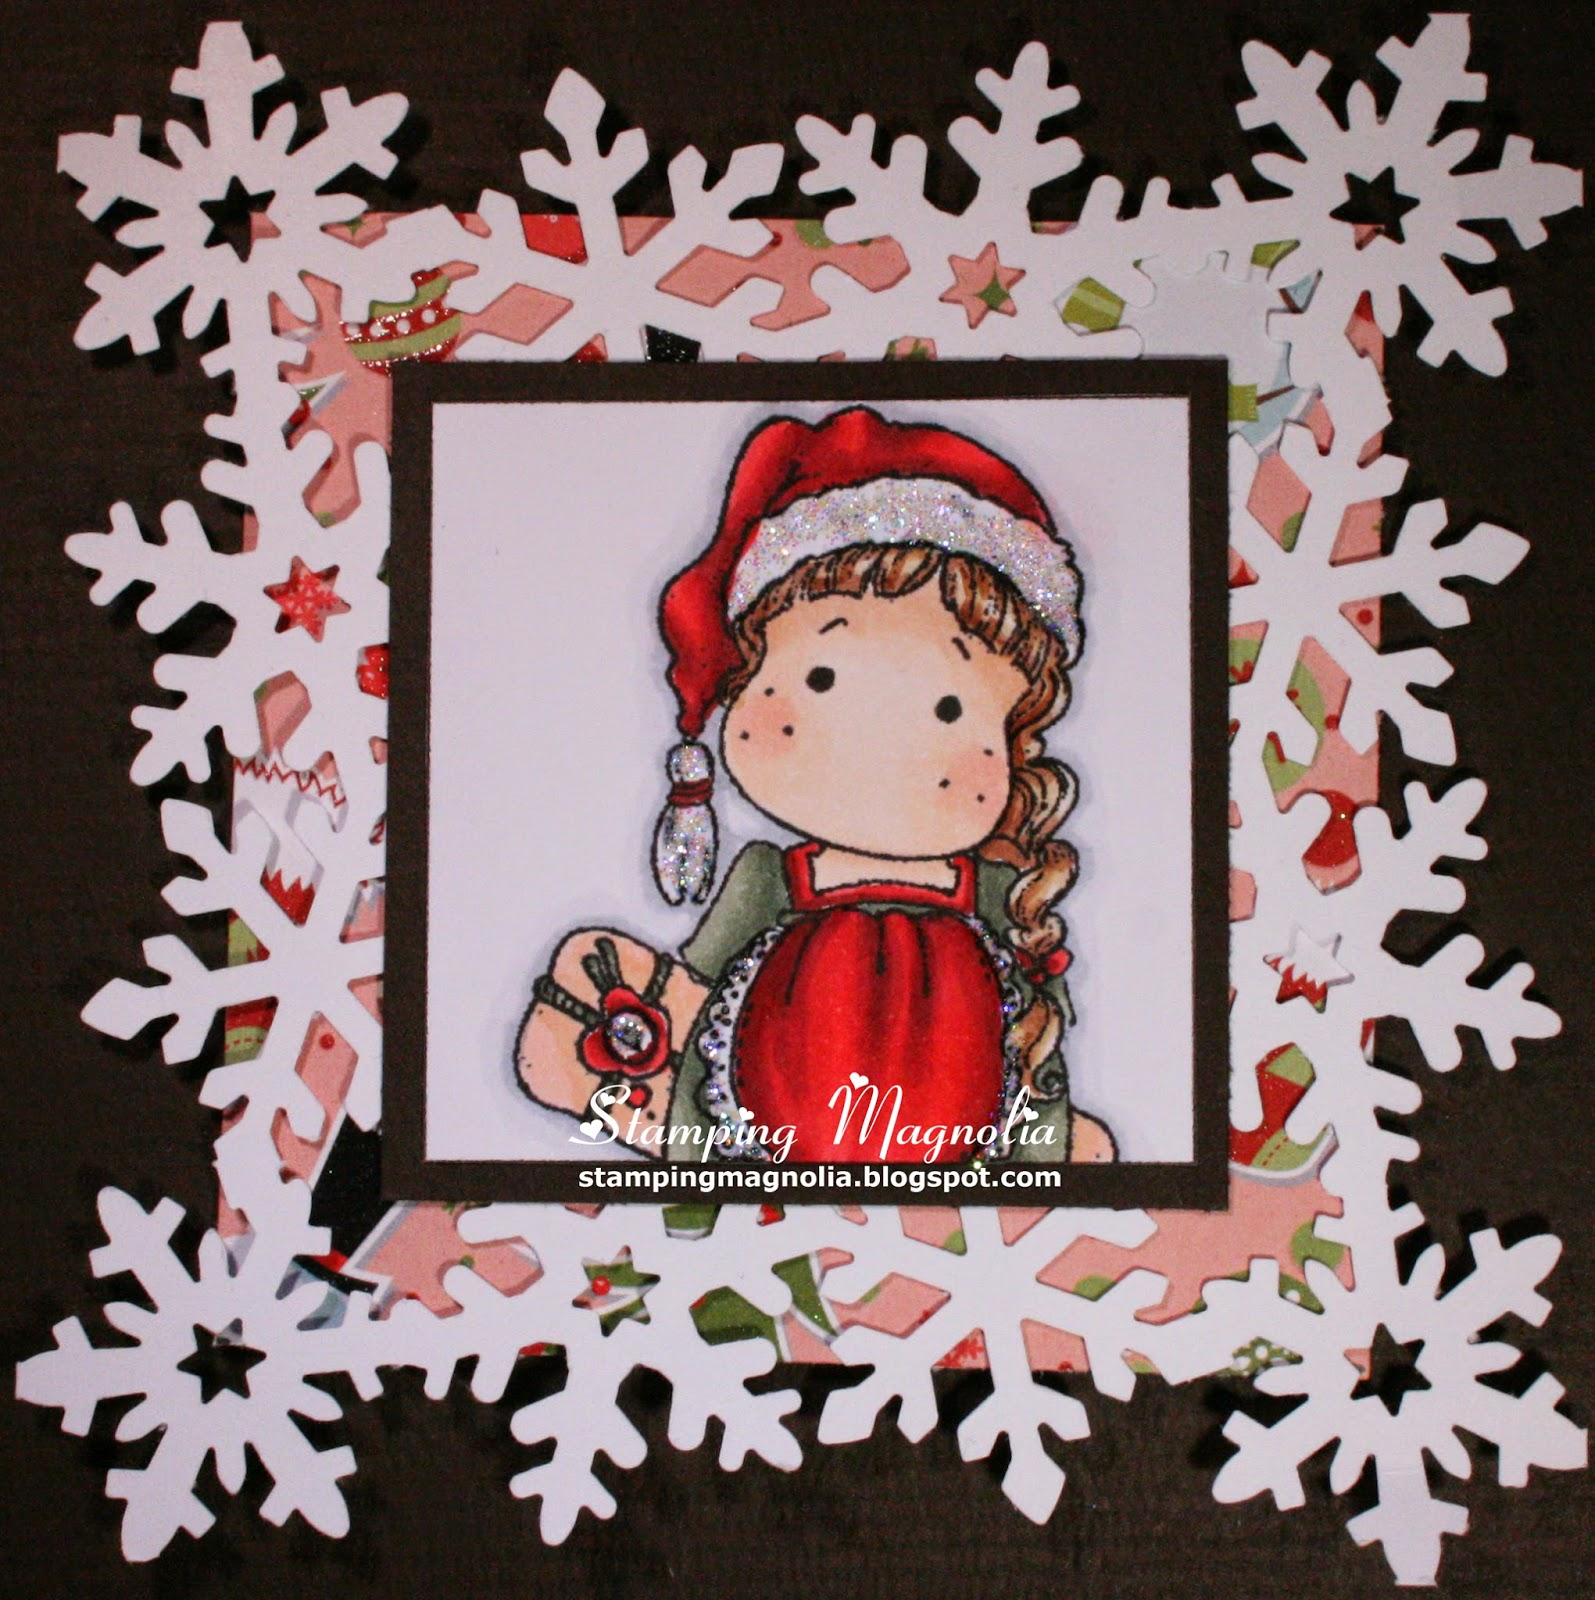 Coloring Magnolia Stamp Sweet Christmas Dreams Collection - Tilda Hiding Gift